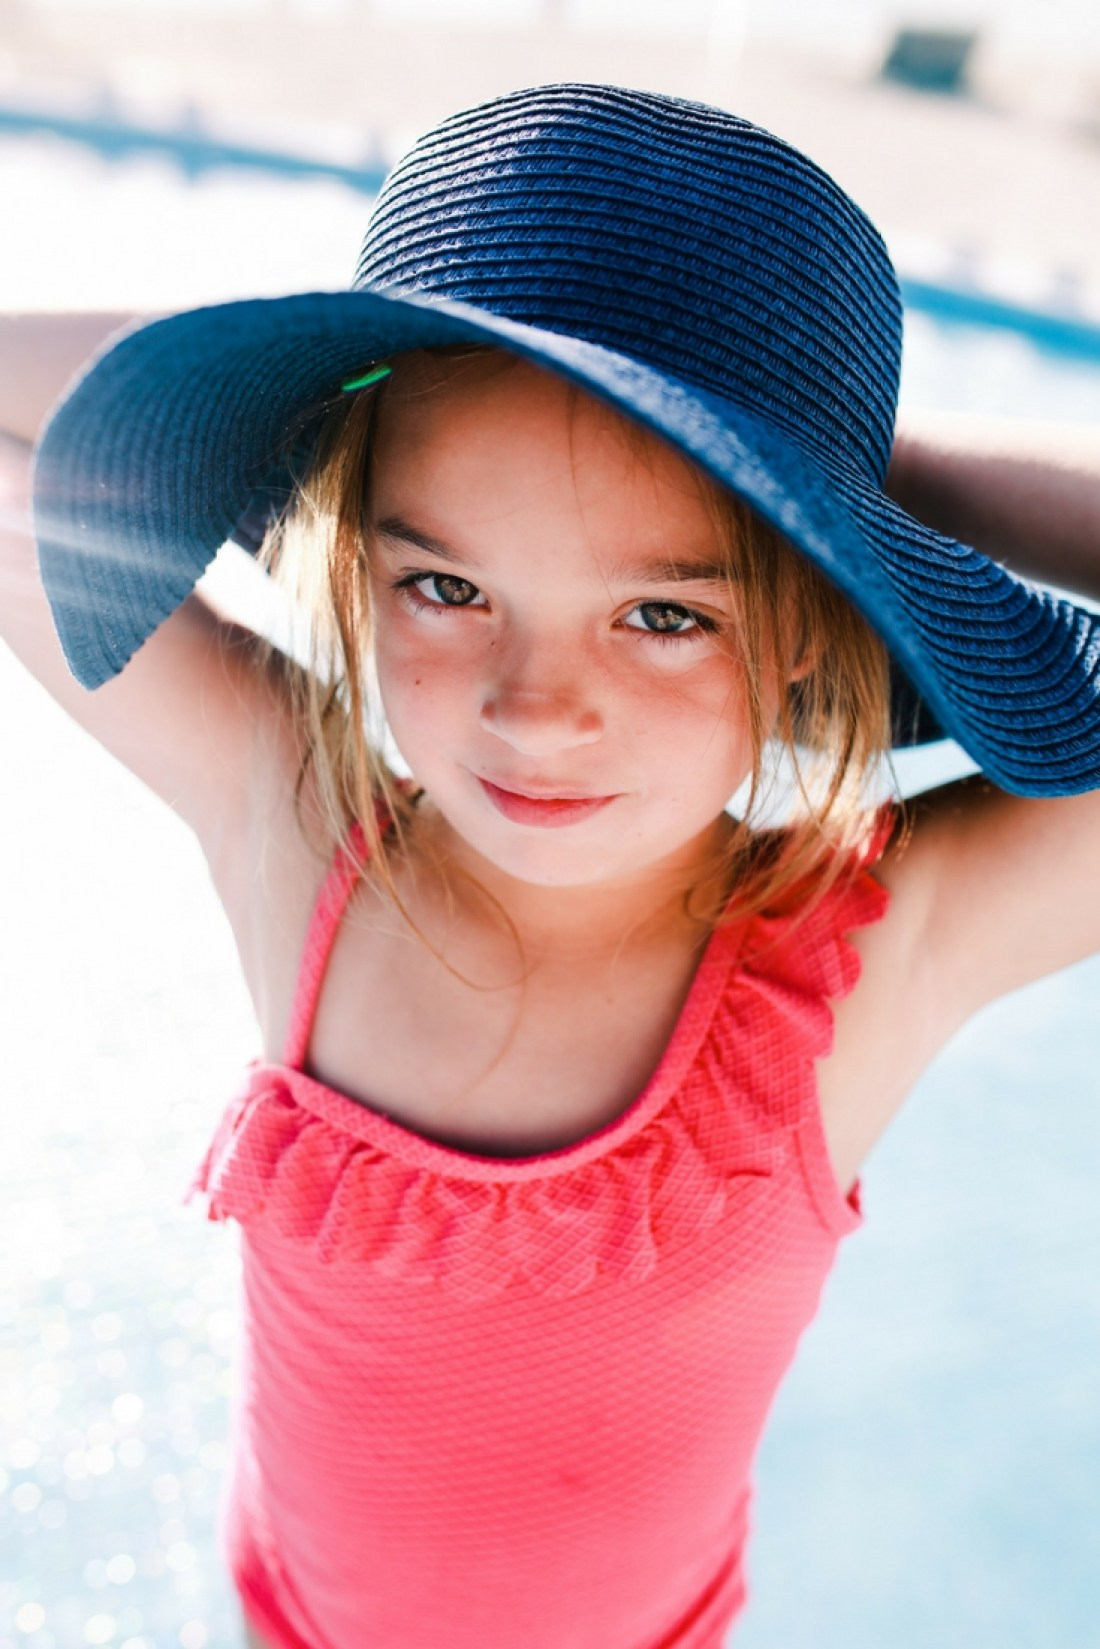 Cute kids hat for the beach and pool